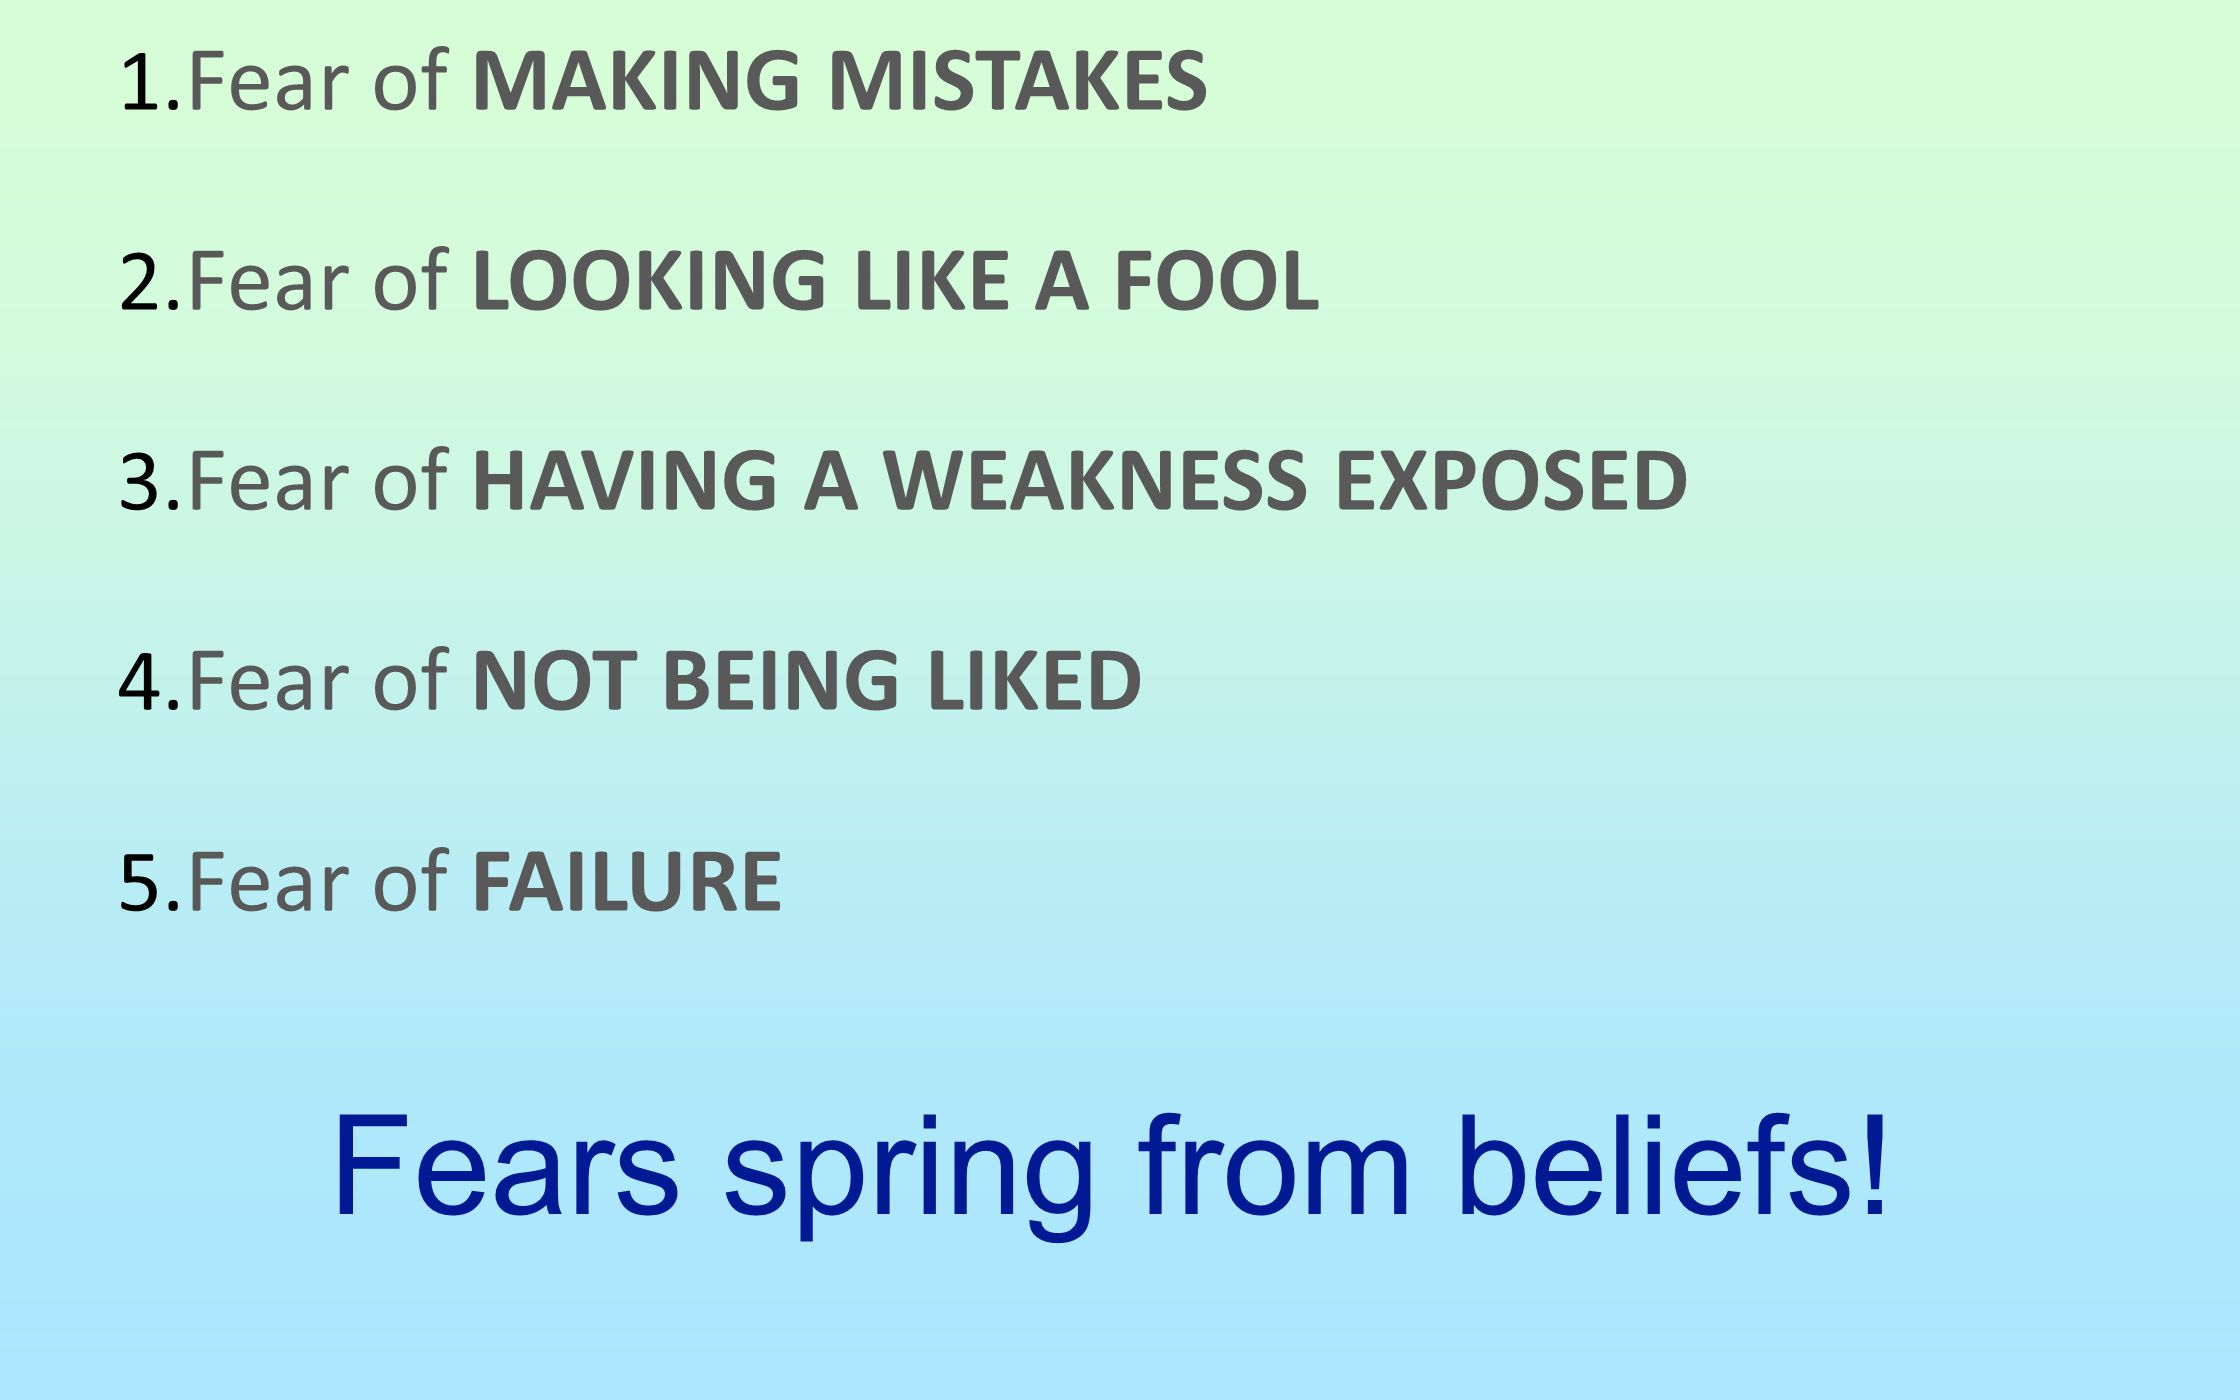 1. Fear of MAKING MISTAKES 2. Fear of LOOKING LIKE A FOOL 3. Fear of HAVING A WEAKNESS EXPOSED 4. Fear of NOT BEING LIKED 5. Fear of FAILURE Fears spr